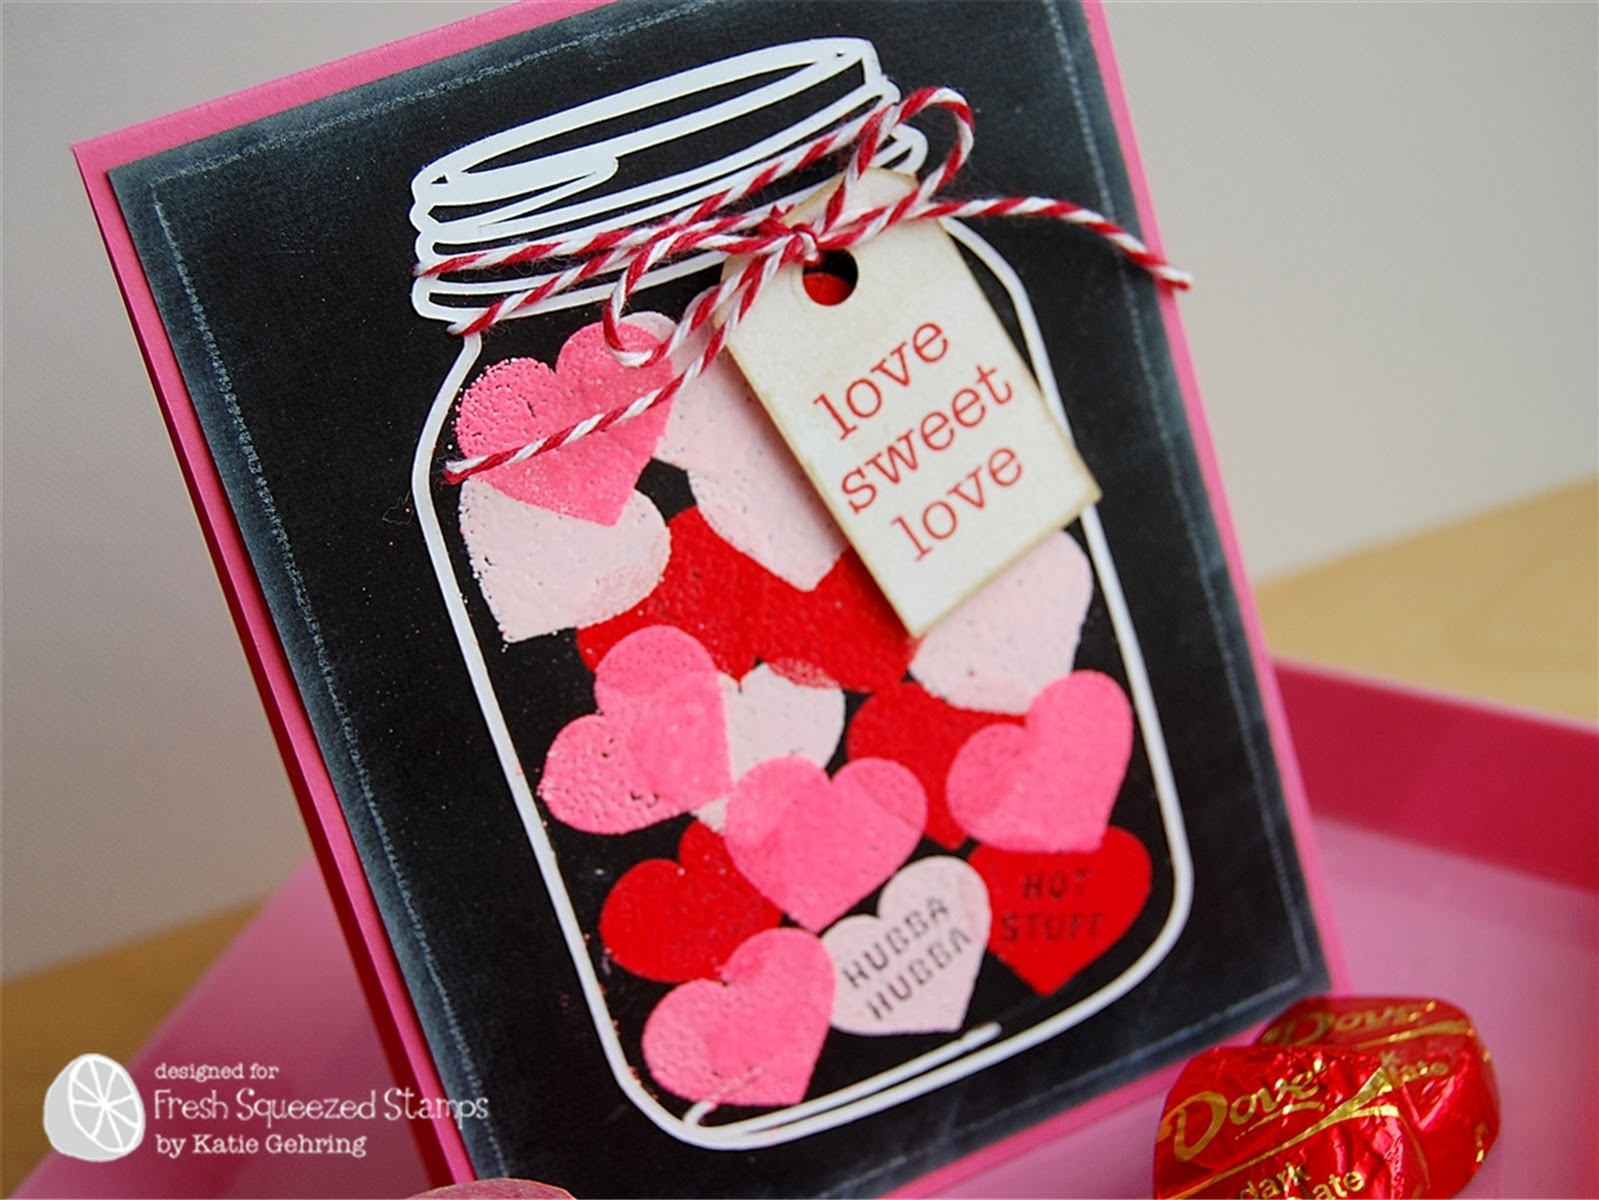 Fresh Squeezed Stamps: A Jar of Hearts